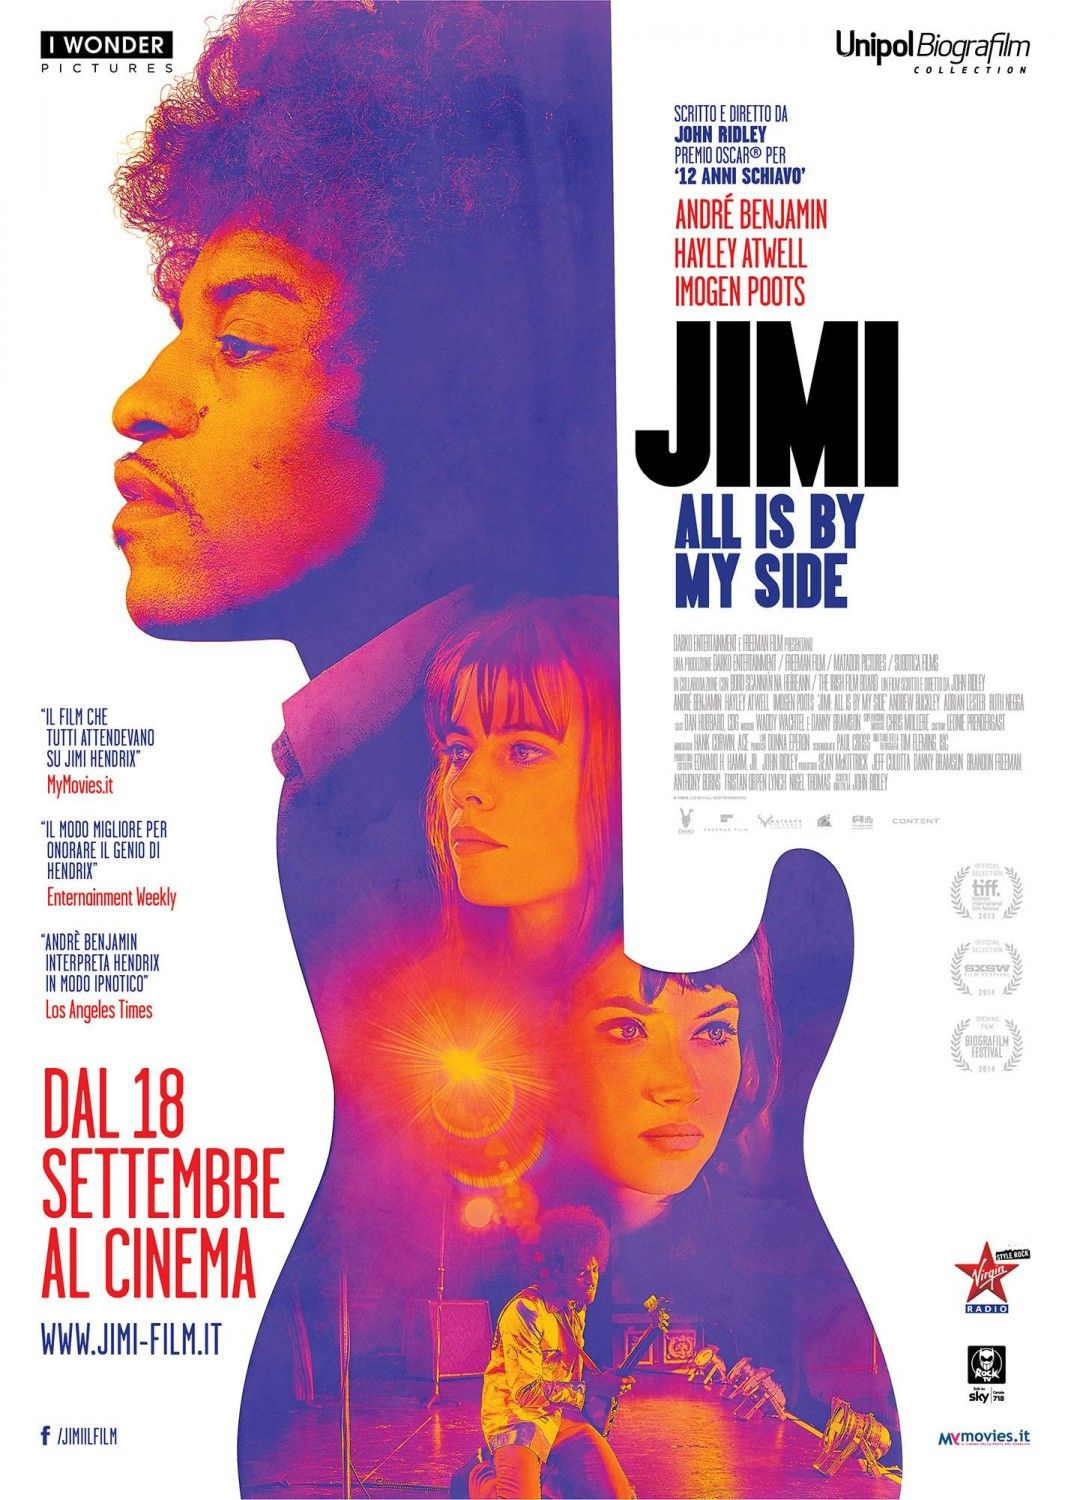 All Is By My Side Est Un Film De John Ridley Avec Andr 233